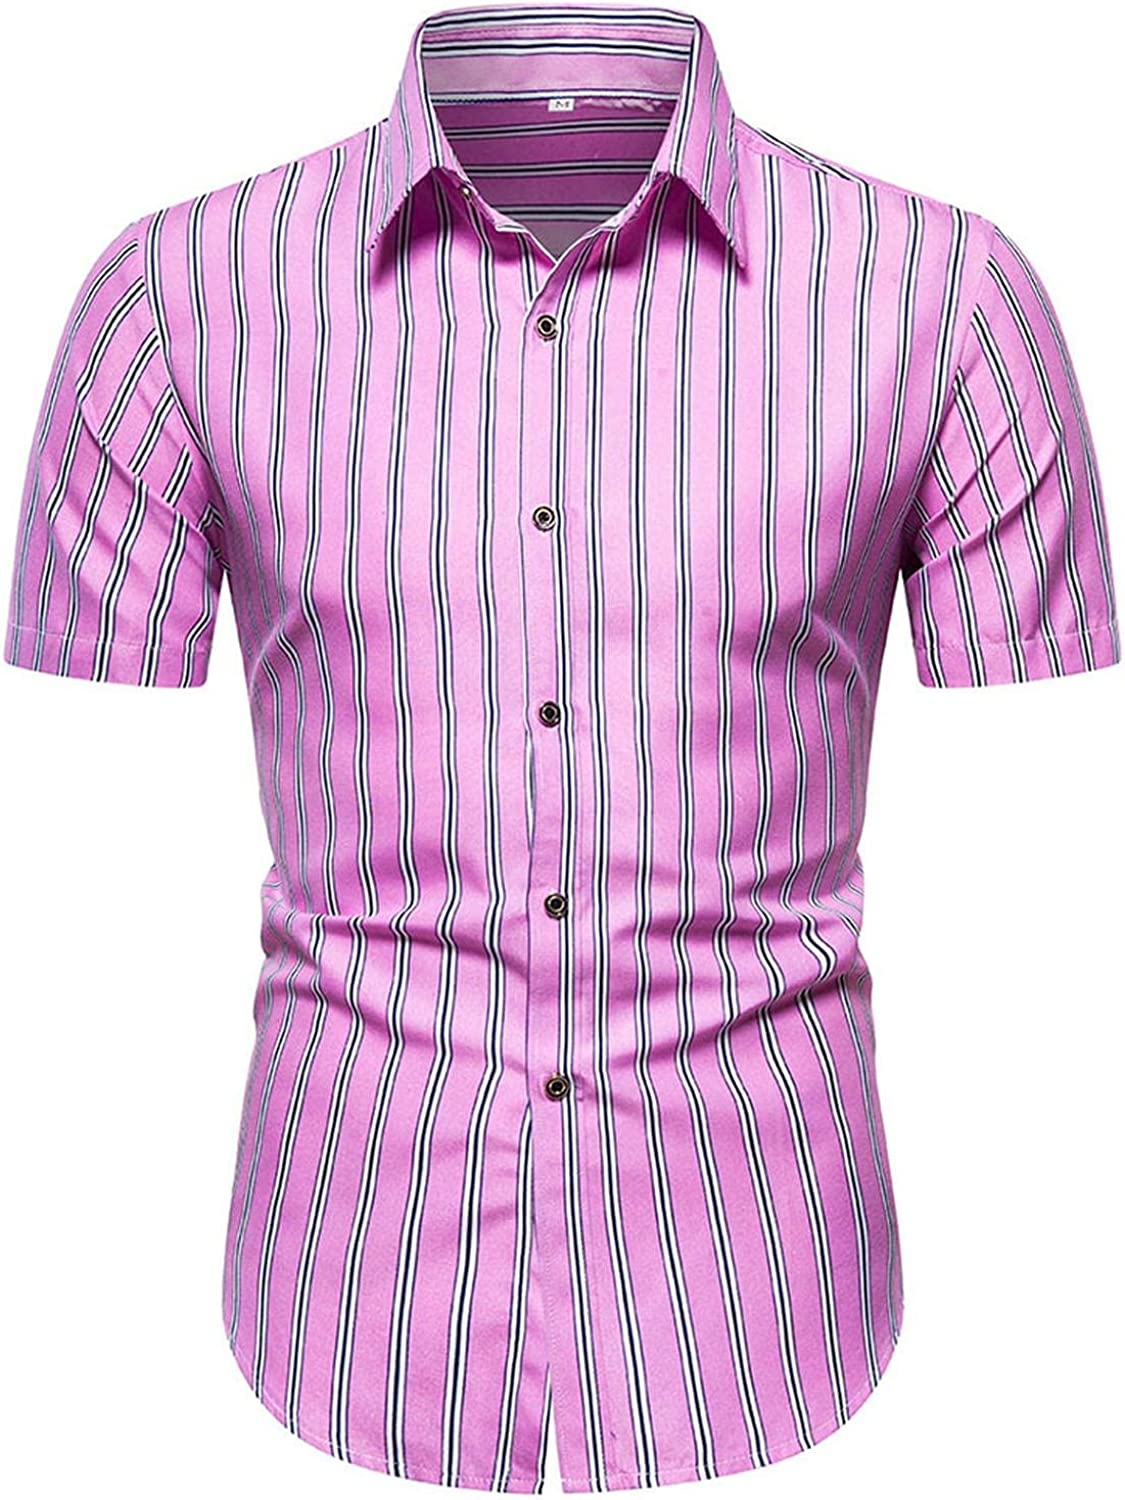 viwoMUMO Men's Summer Shirts Casual Colorful Striped Print,Short Sleeve Loose Button Down Tee Tops Blouse V219